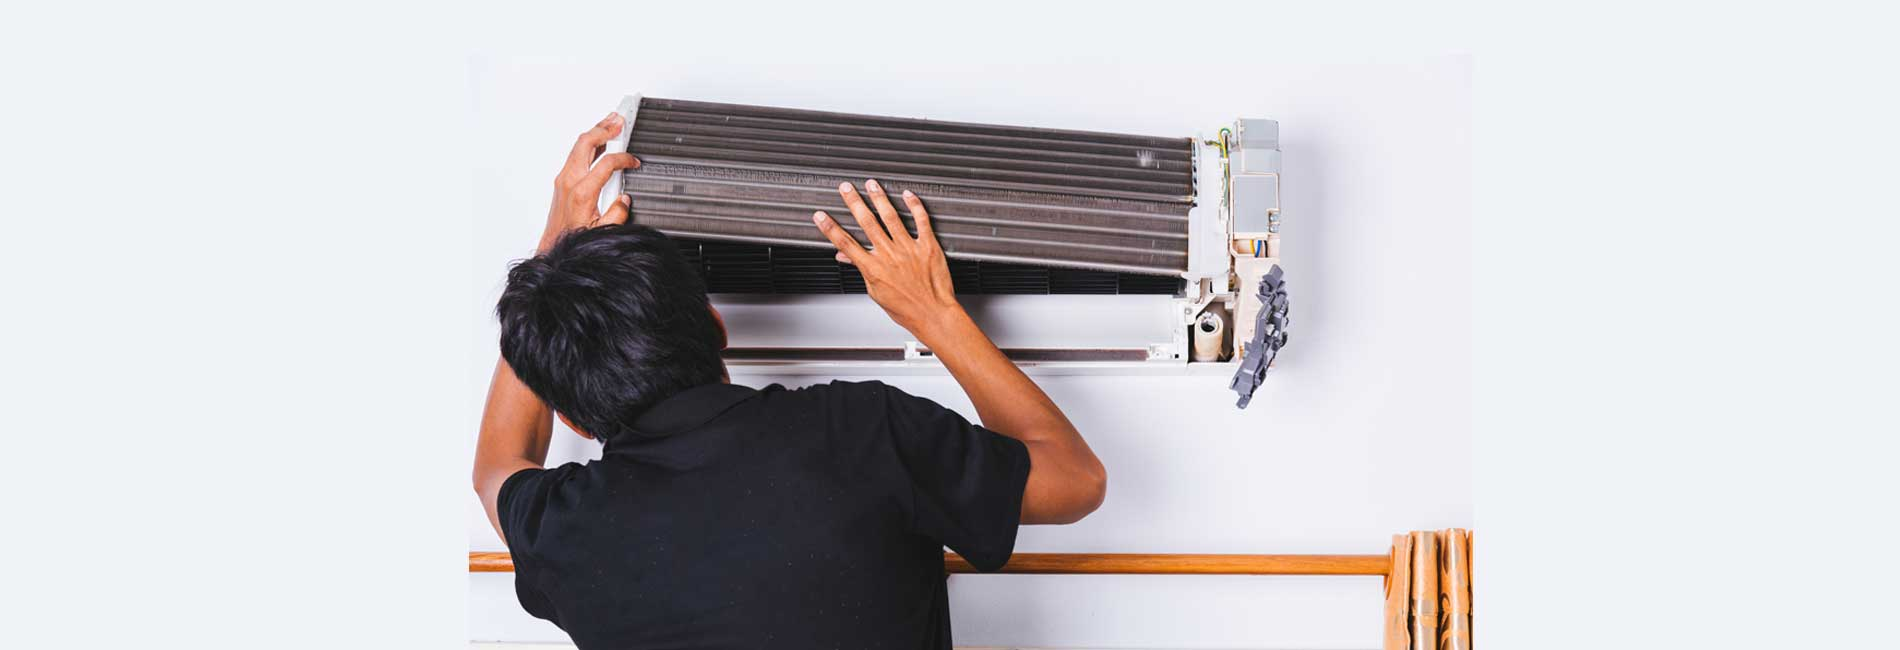 Air Condition Service in Palavanthangal